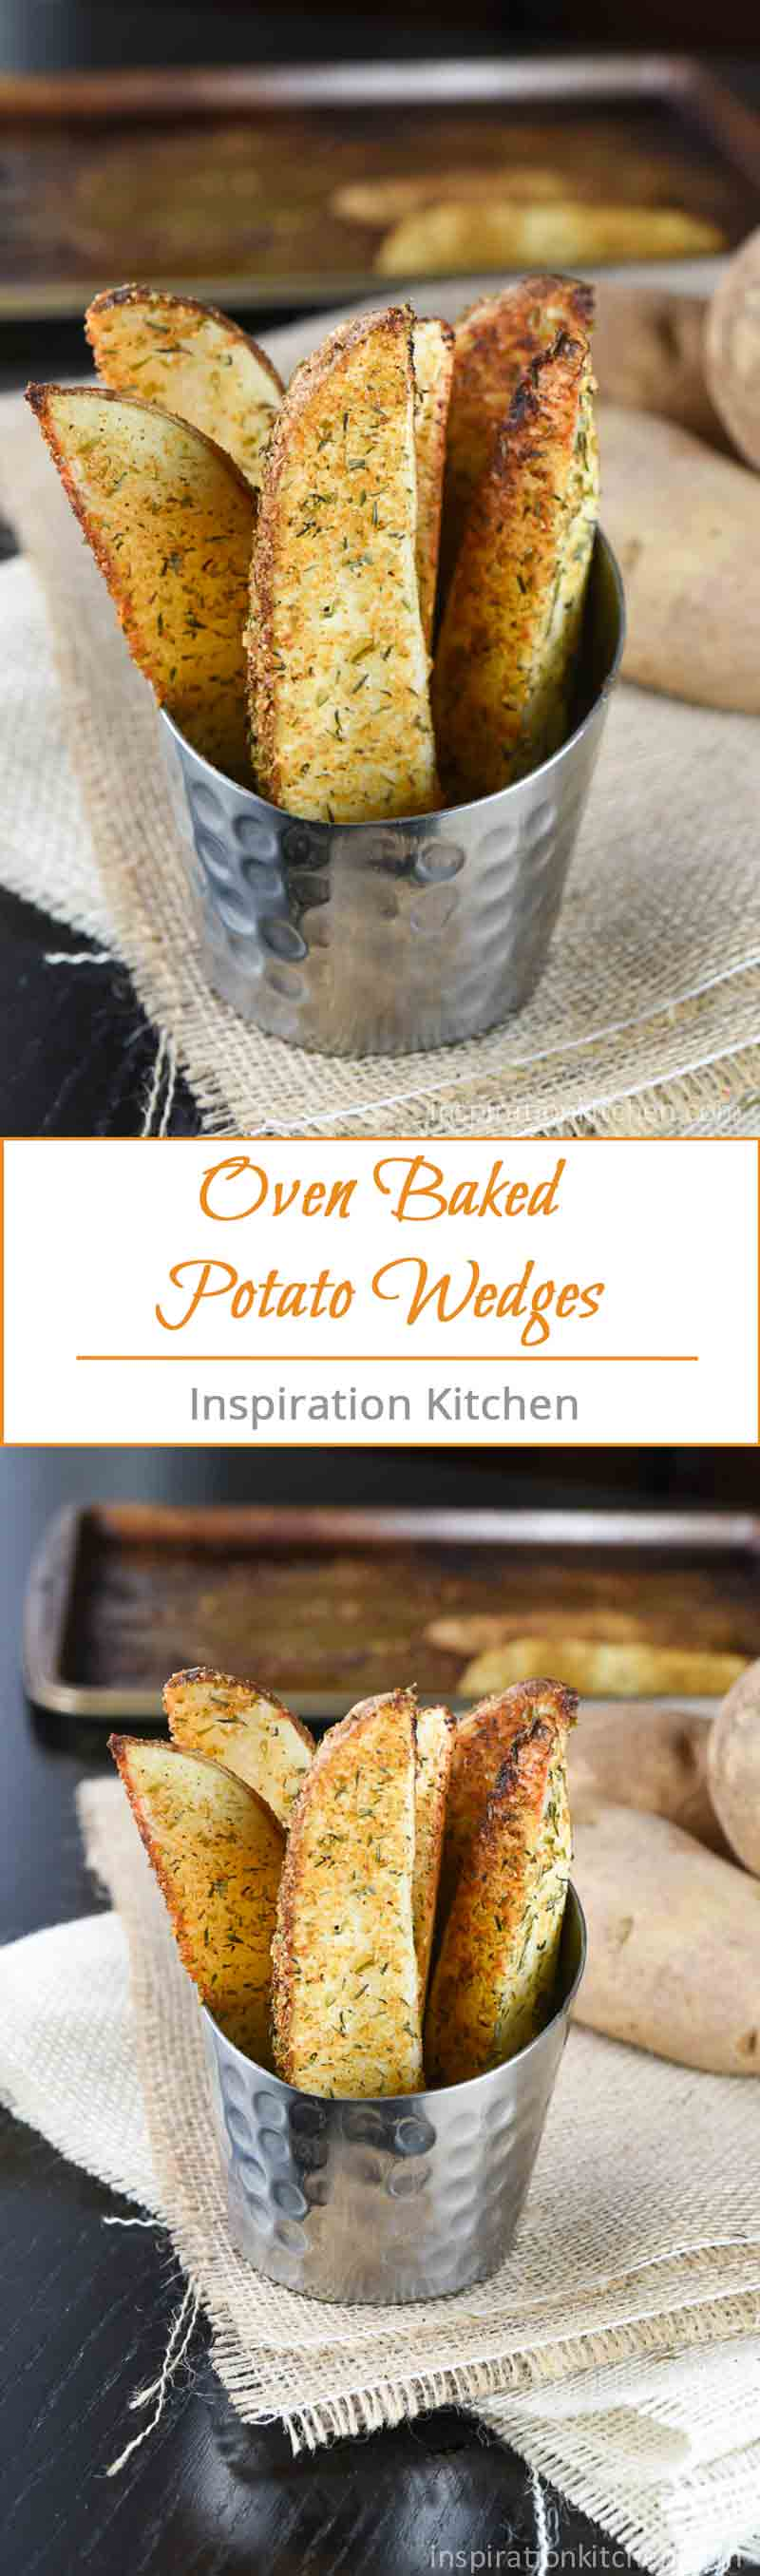 Oven Baked Potato Wedges | Inspiration Kitchen